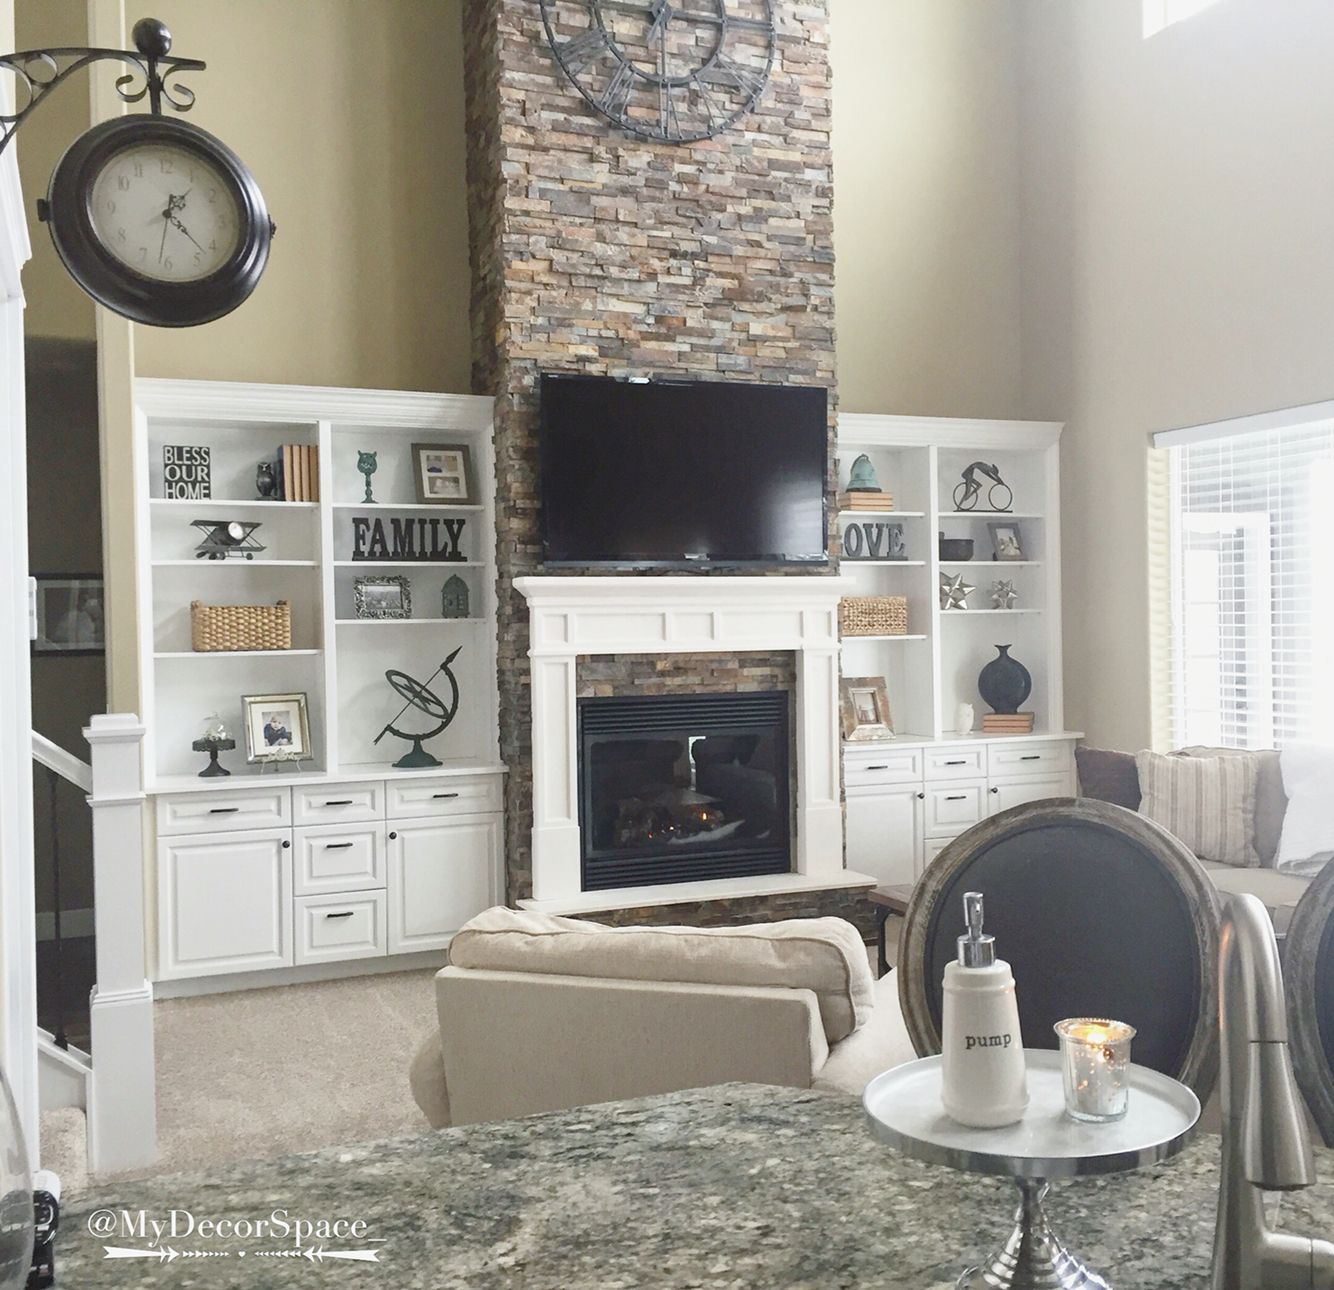 Great Room Family Room Two Story Great Room Two Story Family Room Vaulted Ceiling Living Room Built Ins Built In Around Fireplace House Interior Design Bedroom